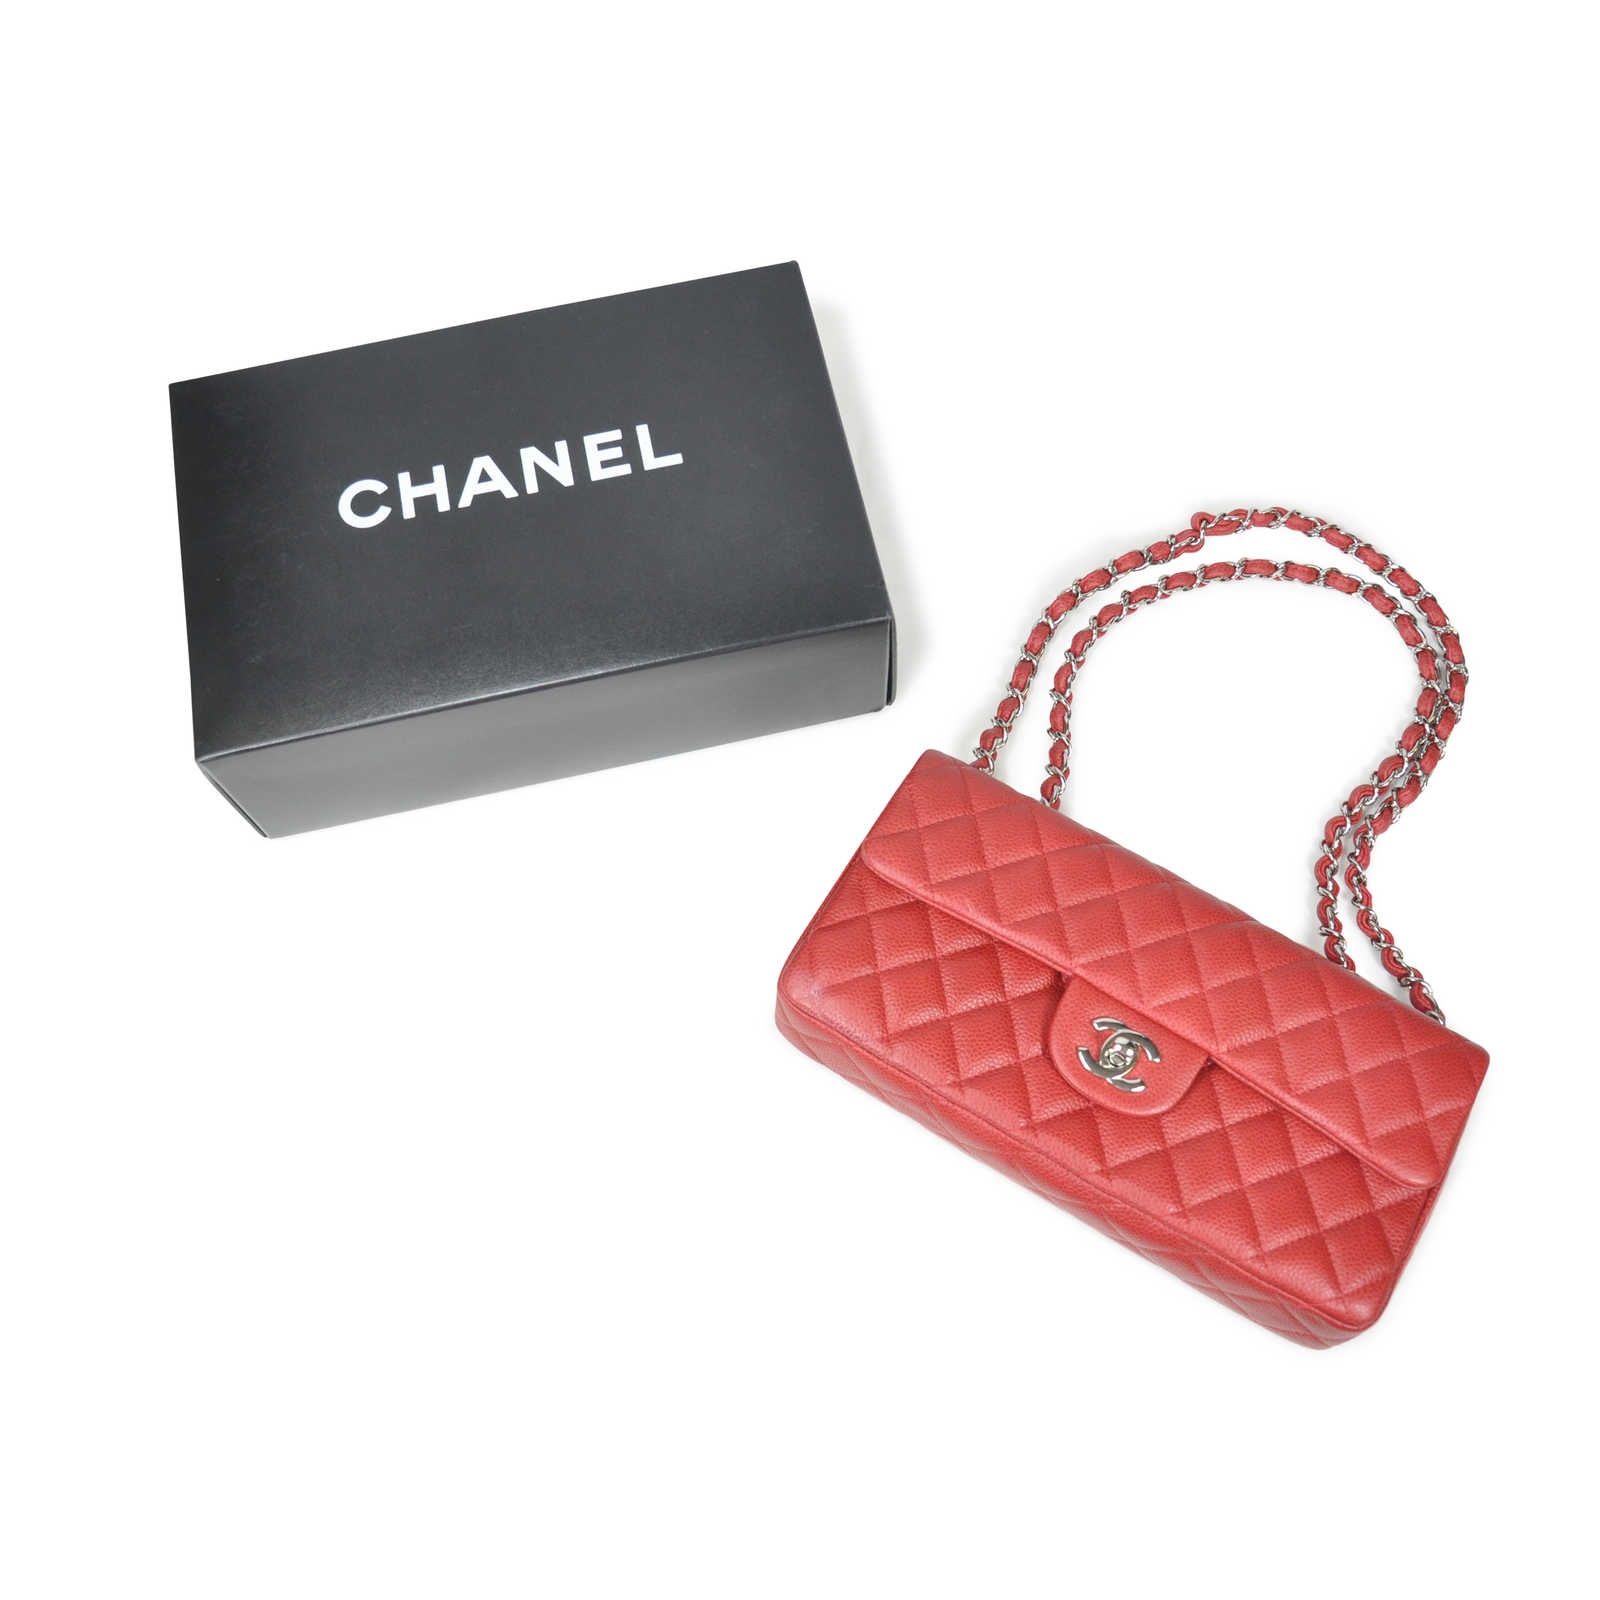 6f91c6743b48 ... Authentic Second Hand Chanel East West Flap Bag (PSS-020-00016) -